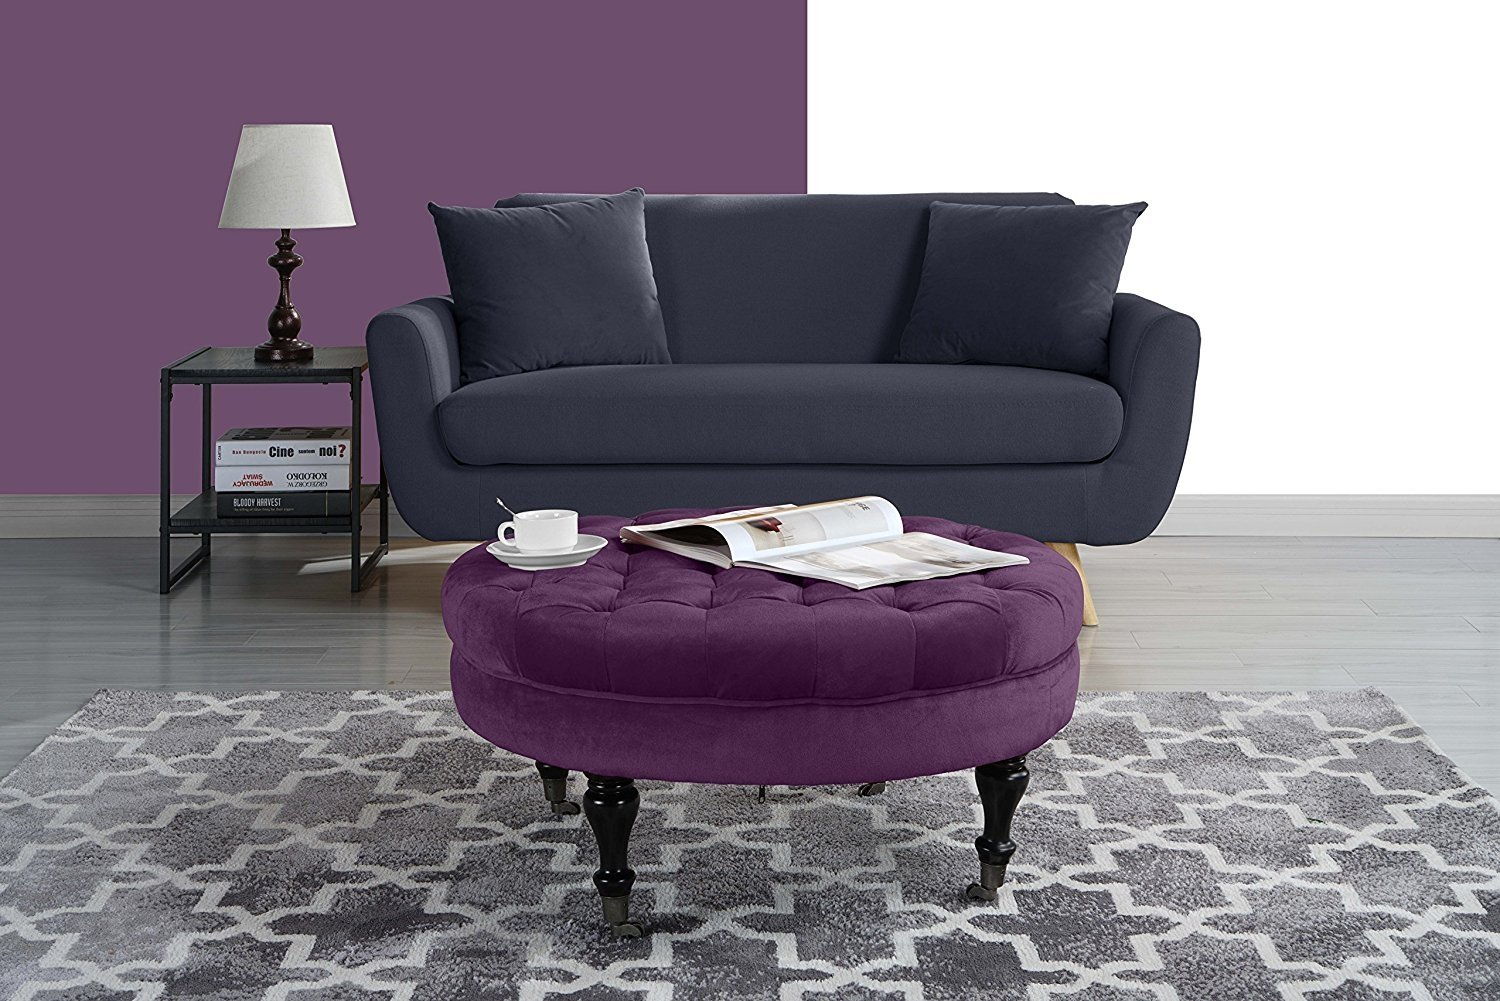 Round Tufted Velvet Coffee Table With Casters, Ottoman With Wheels (Purple)    Walmart.com